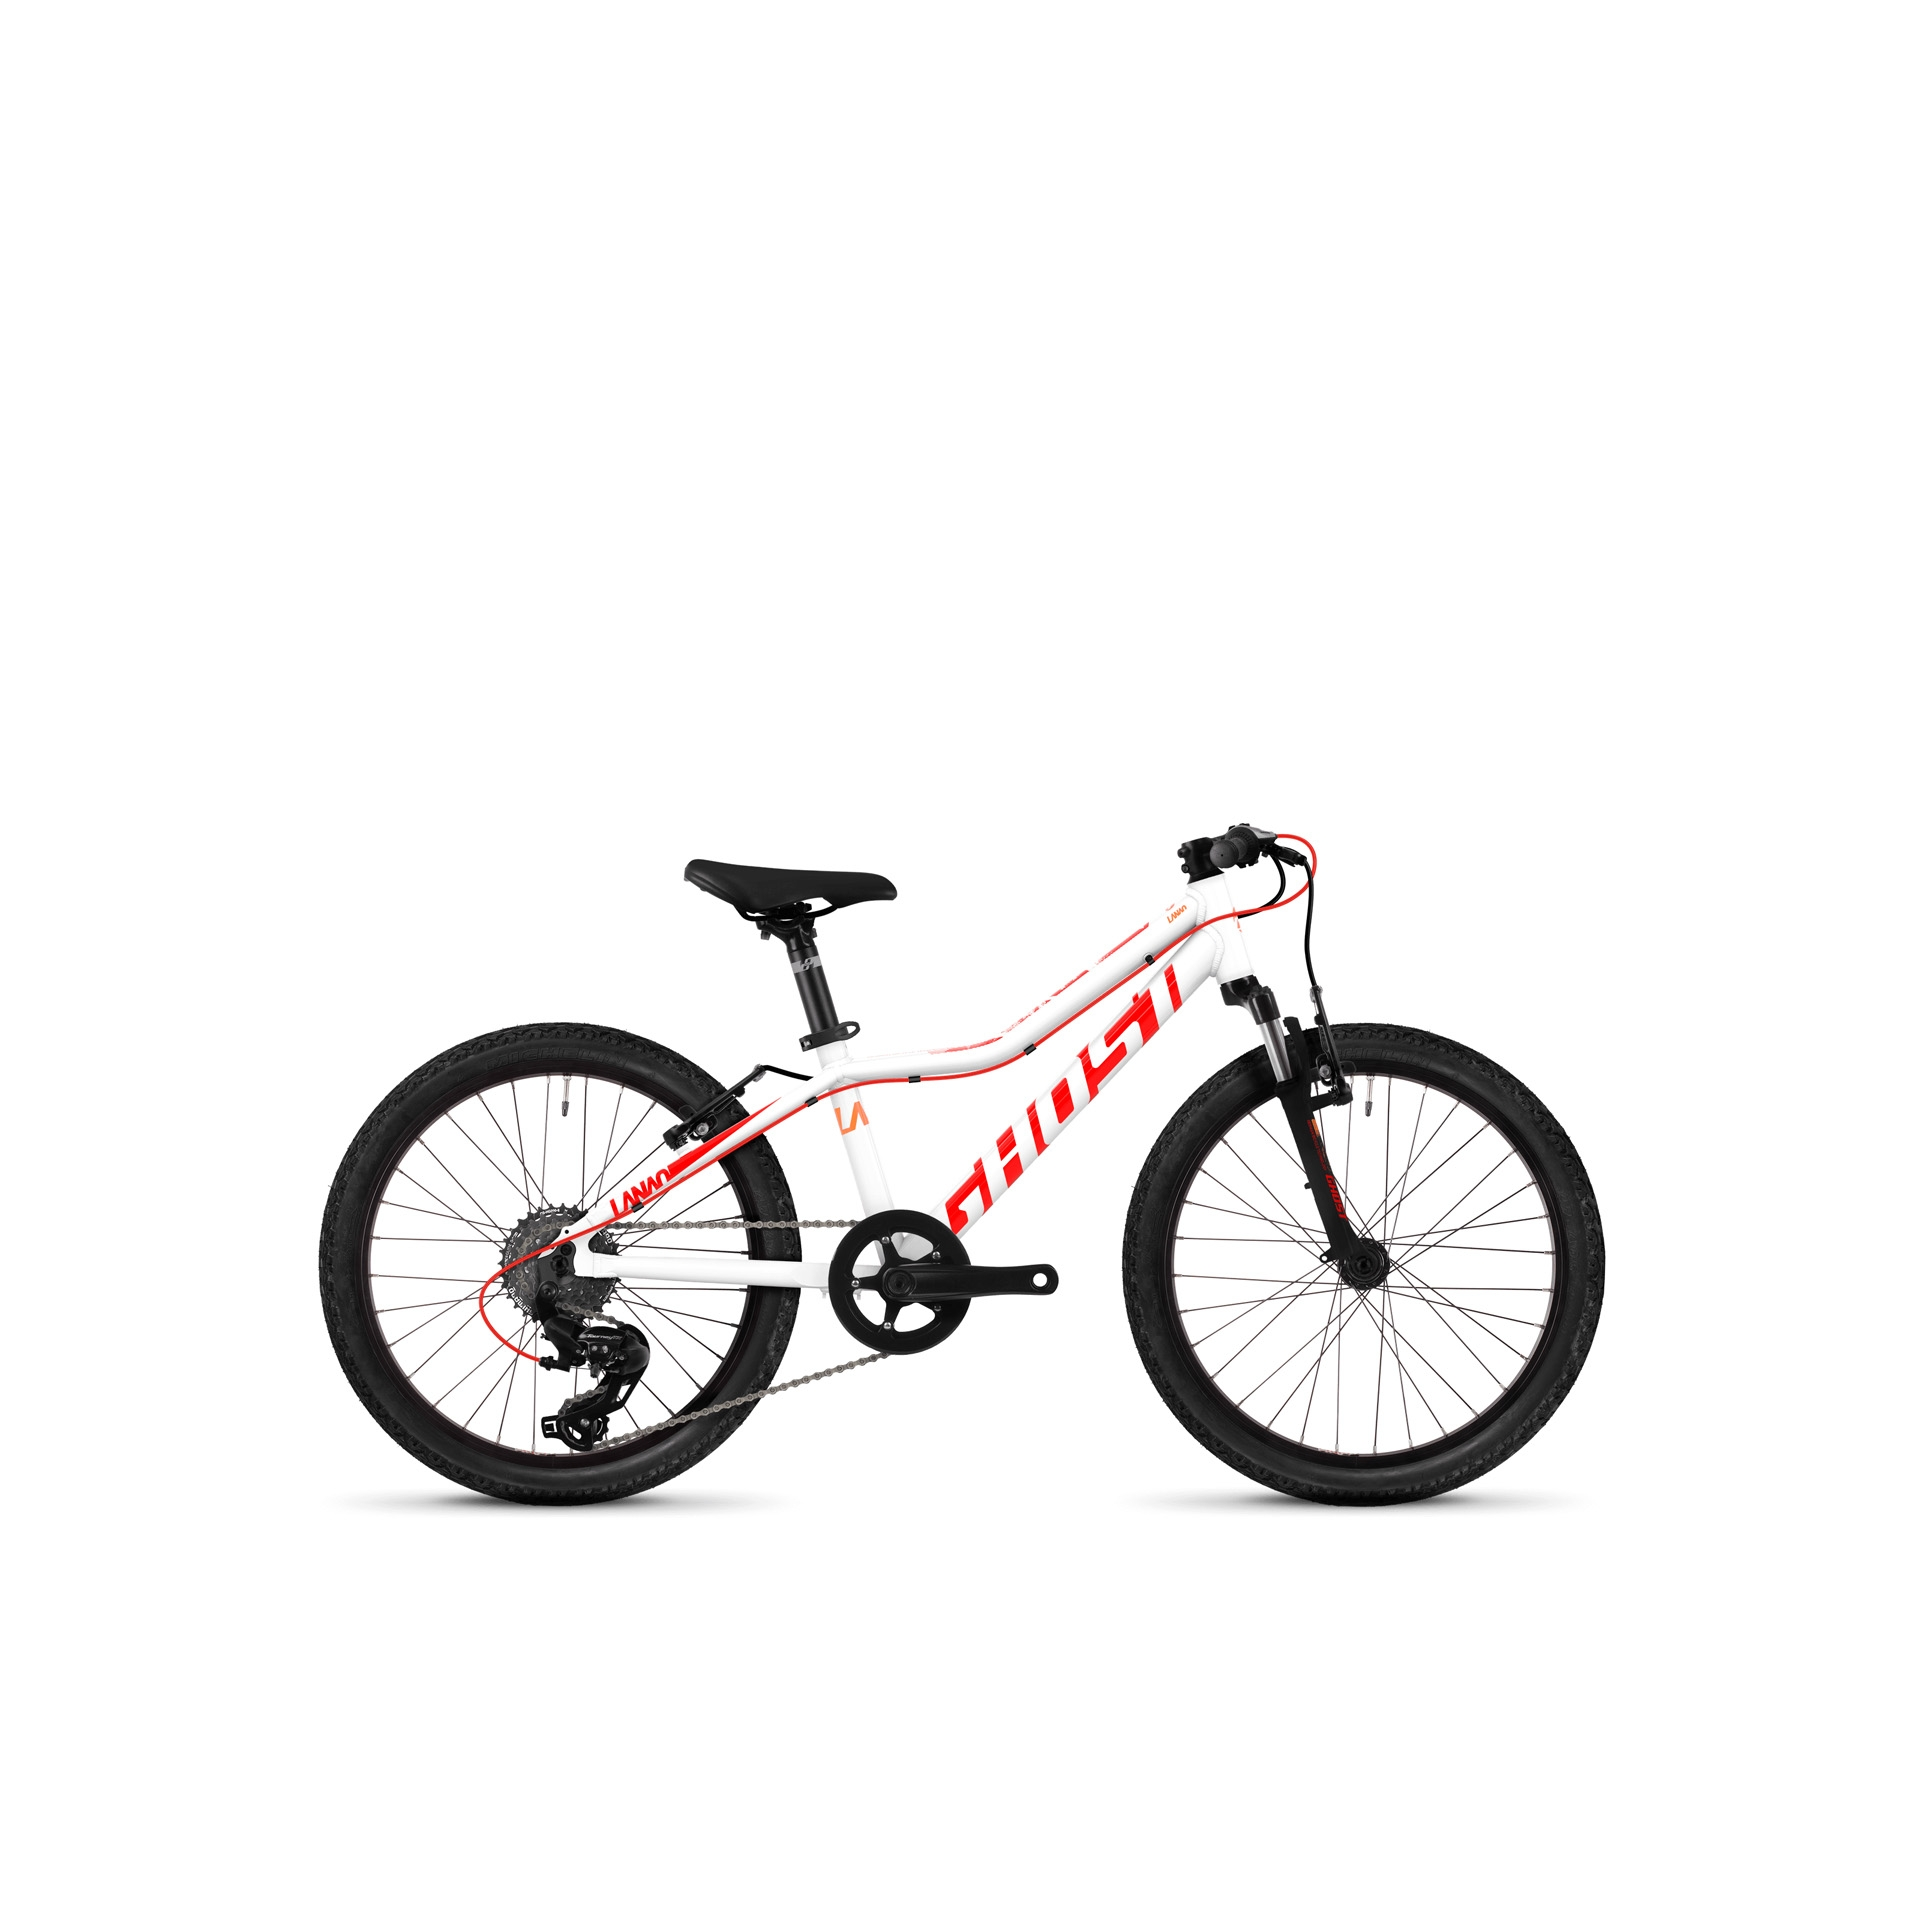 VTT semi-rigide Ghost Lanao Kid 2.0 20 Blanc/Rouge